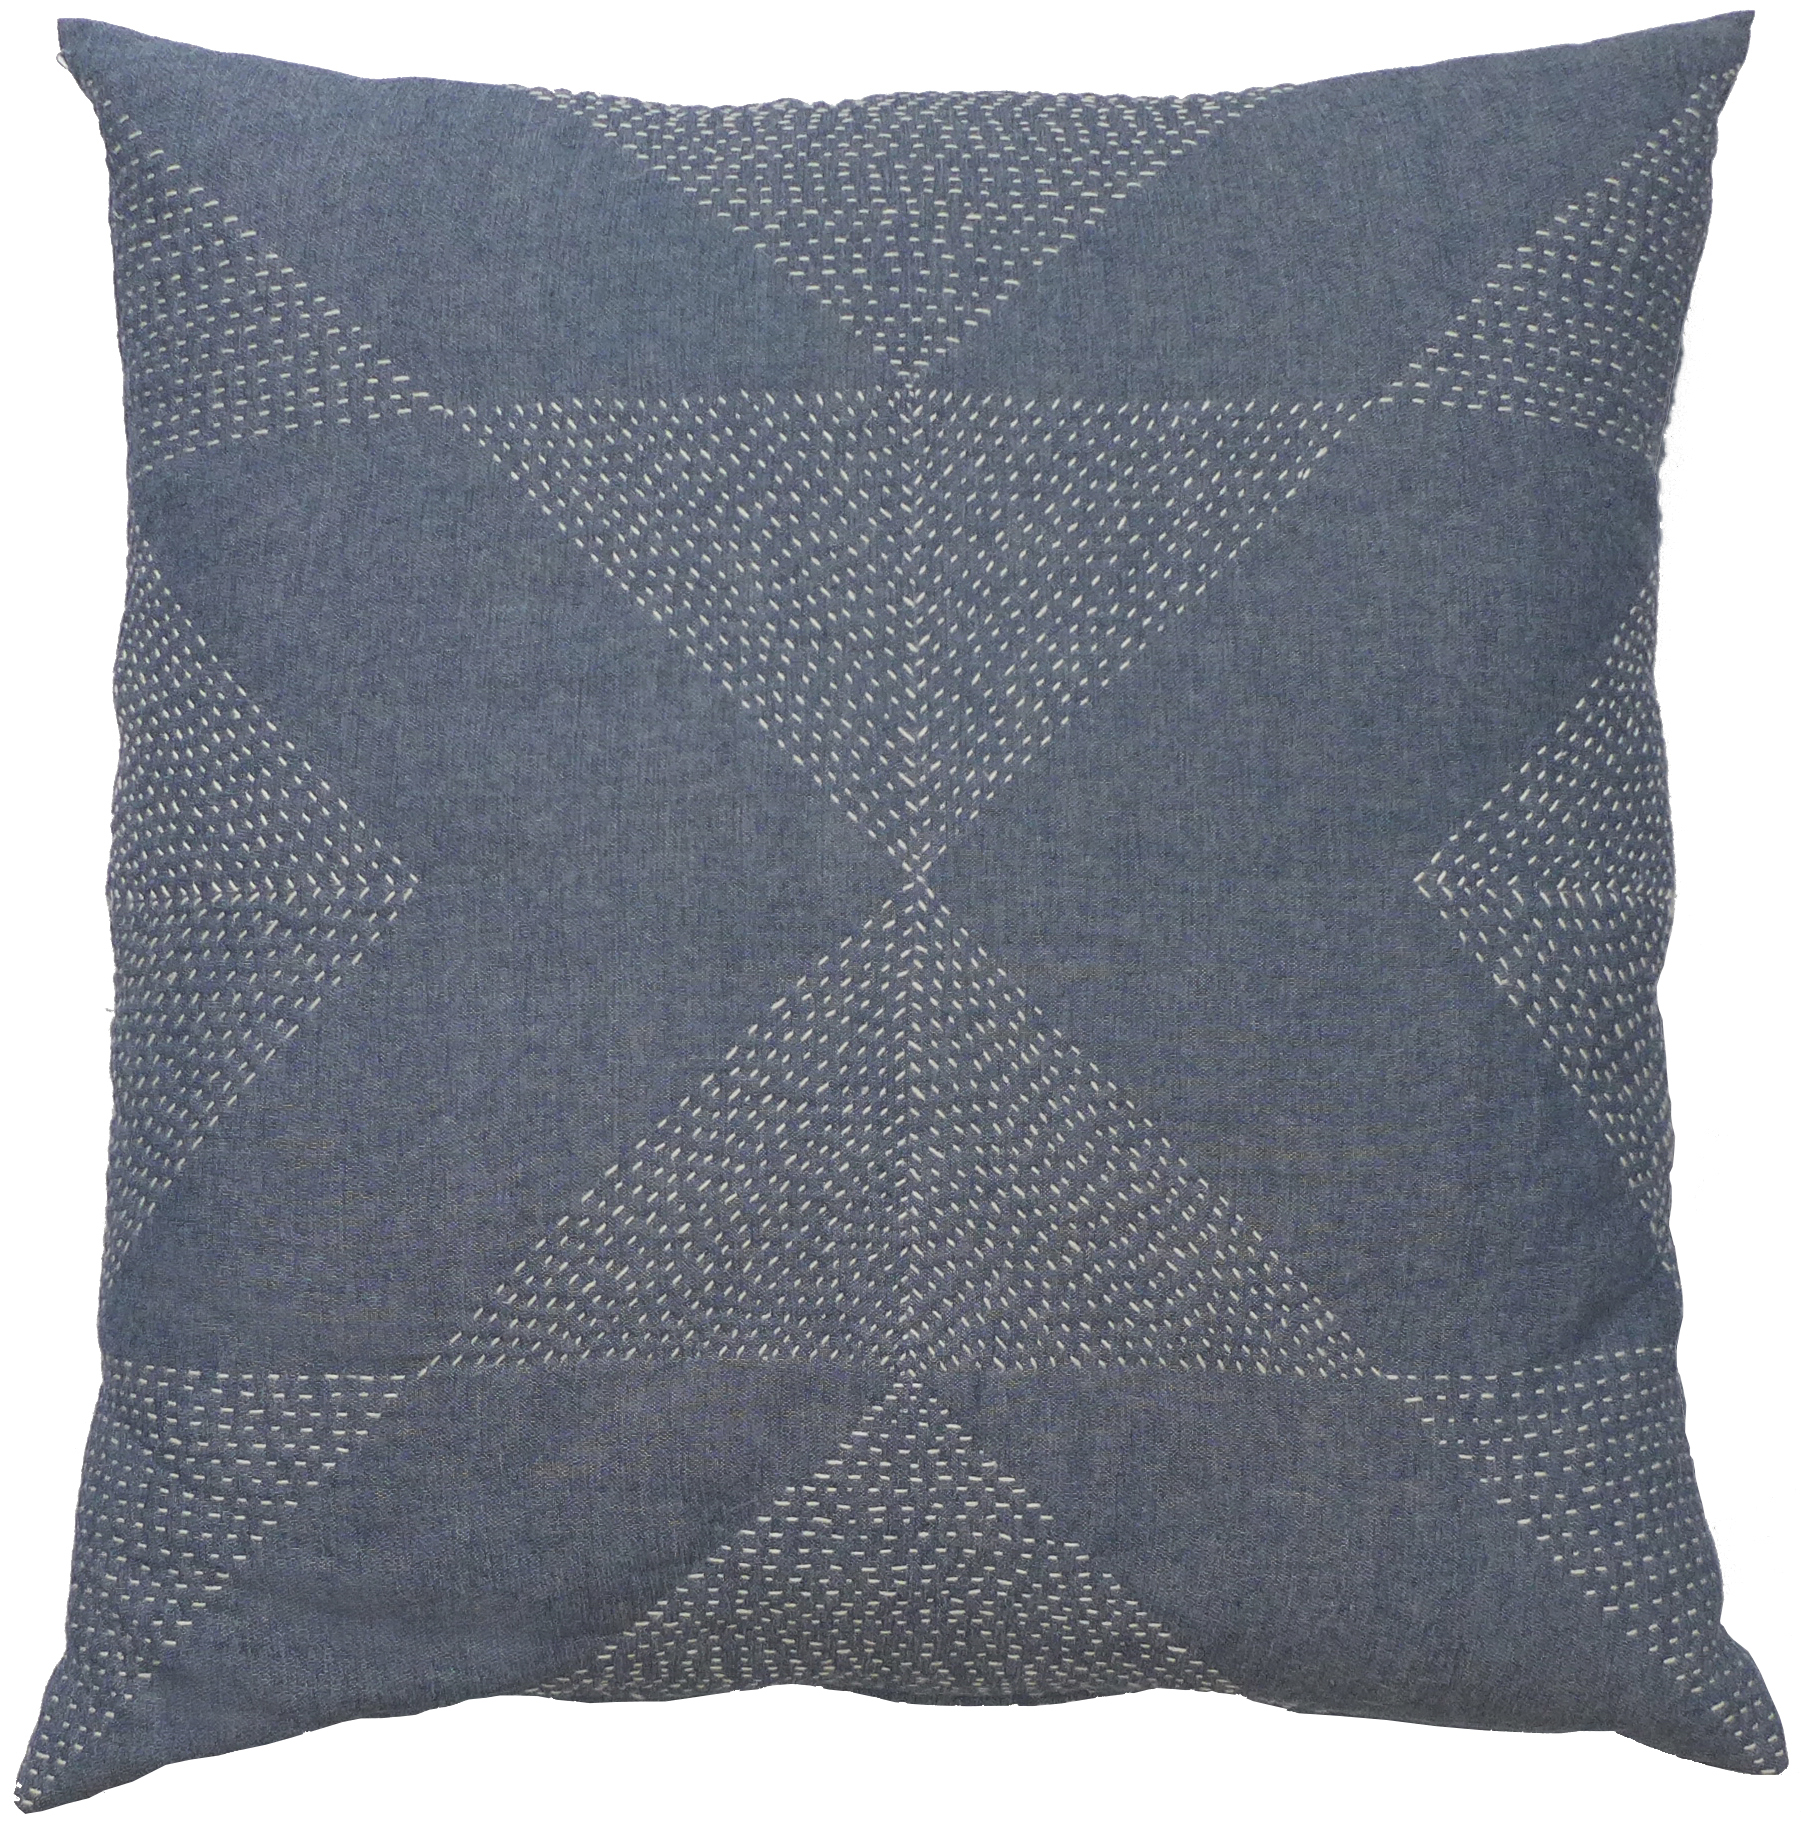 ChambrayStitchPillow-faded.jpg